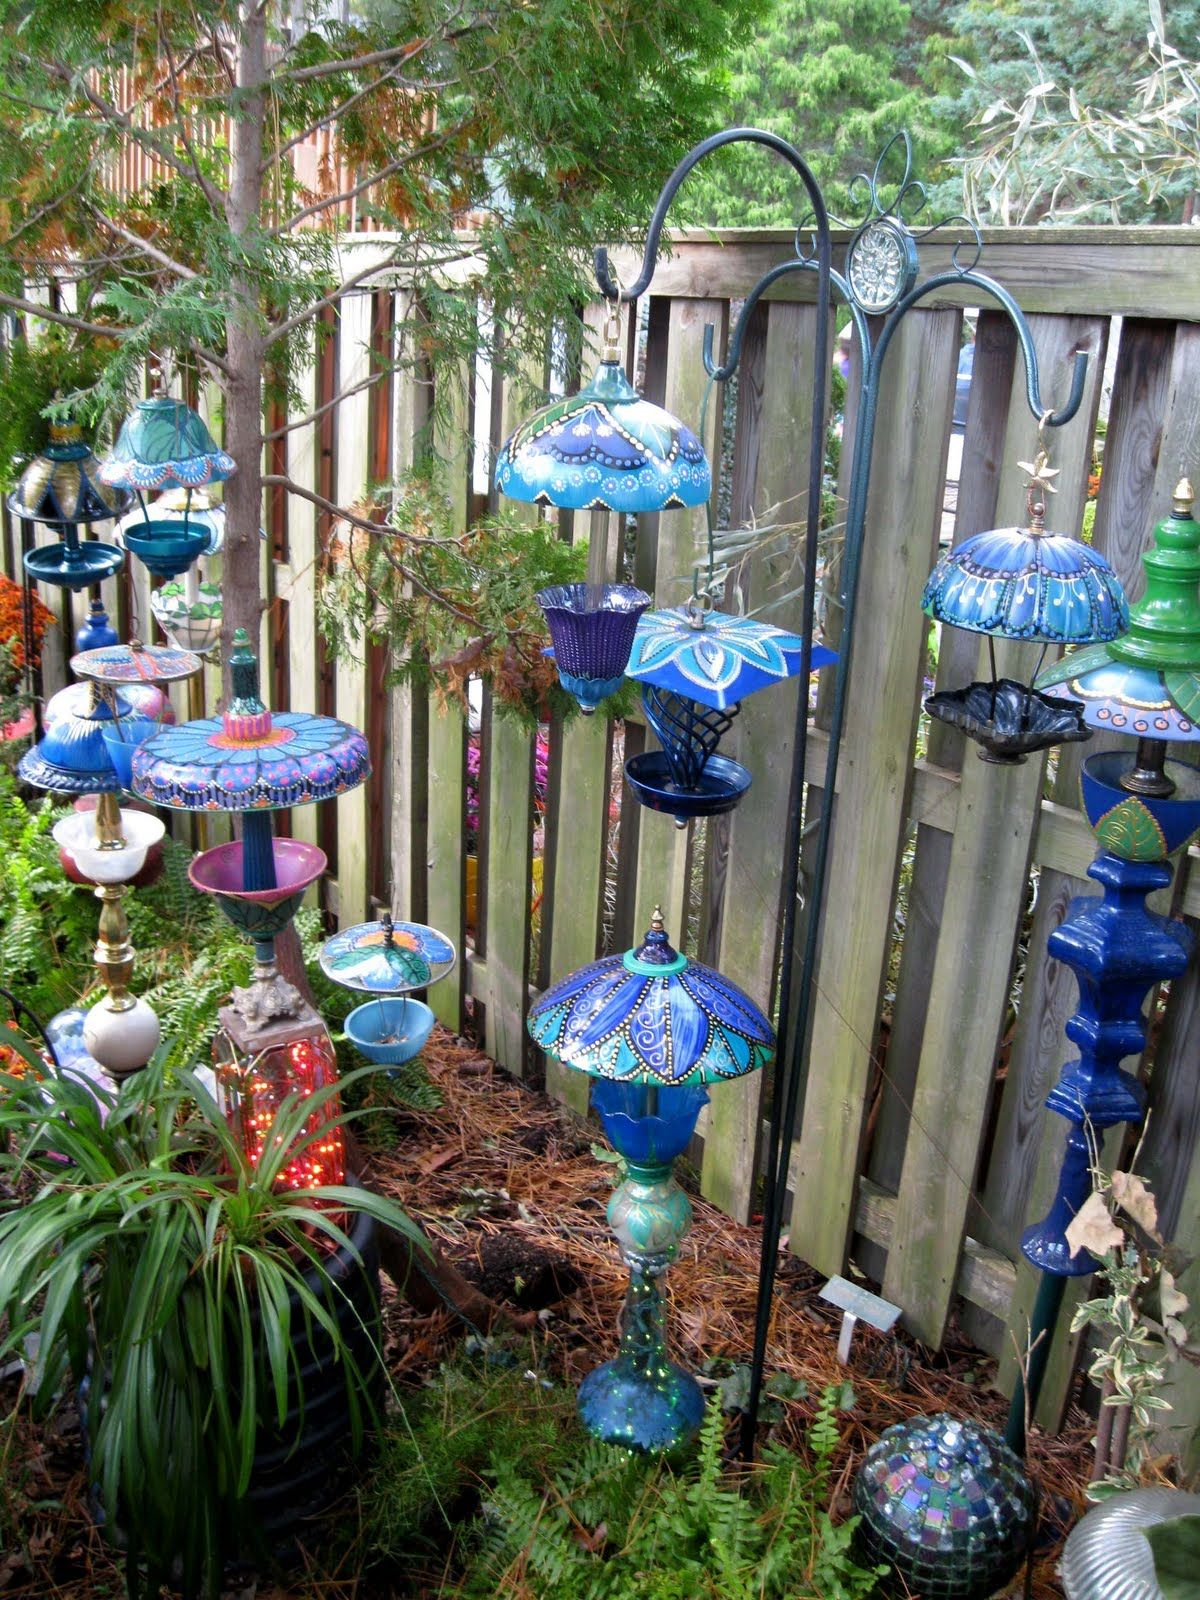 Whimsical garden lamps and bird feedersLove these  Garden art